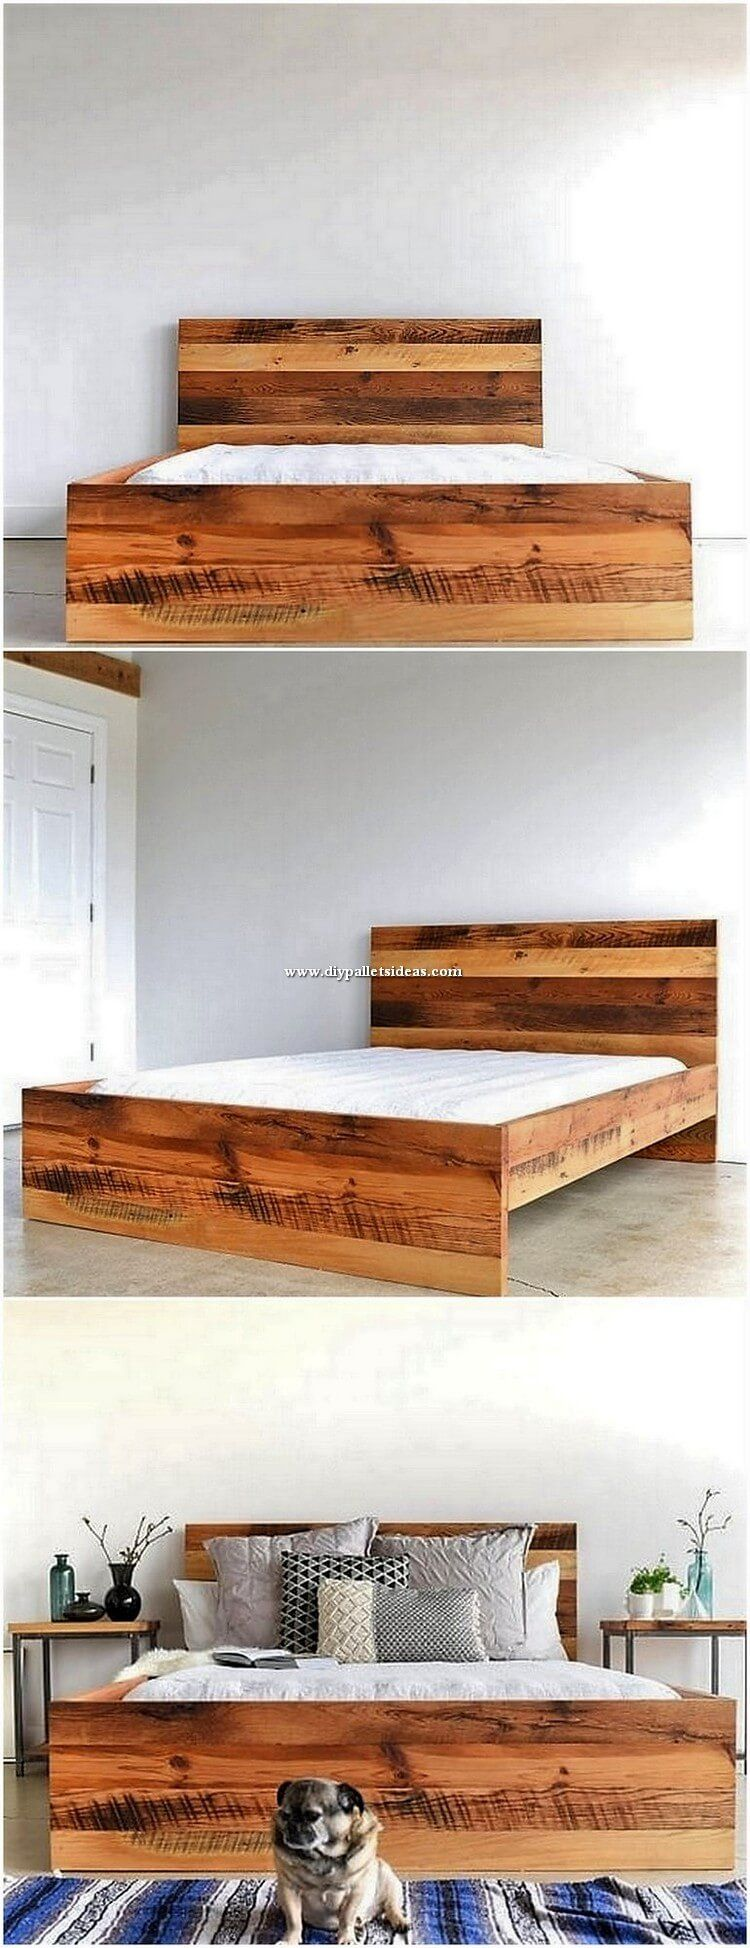 Innovative Diy Ideas Of Old Pallets Recycling Bed Frame Design